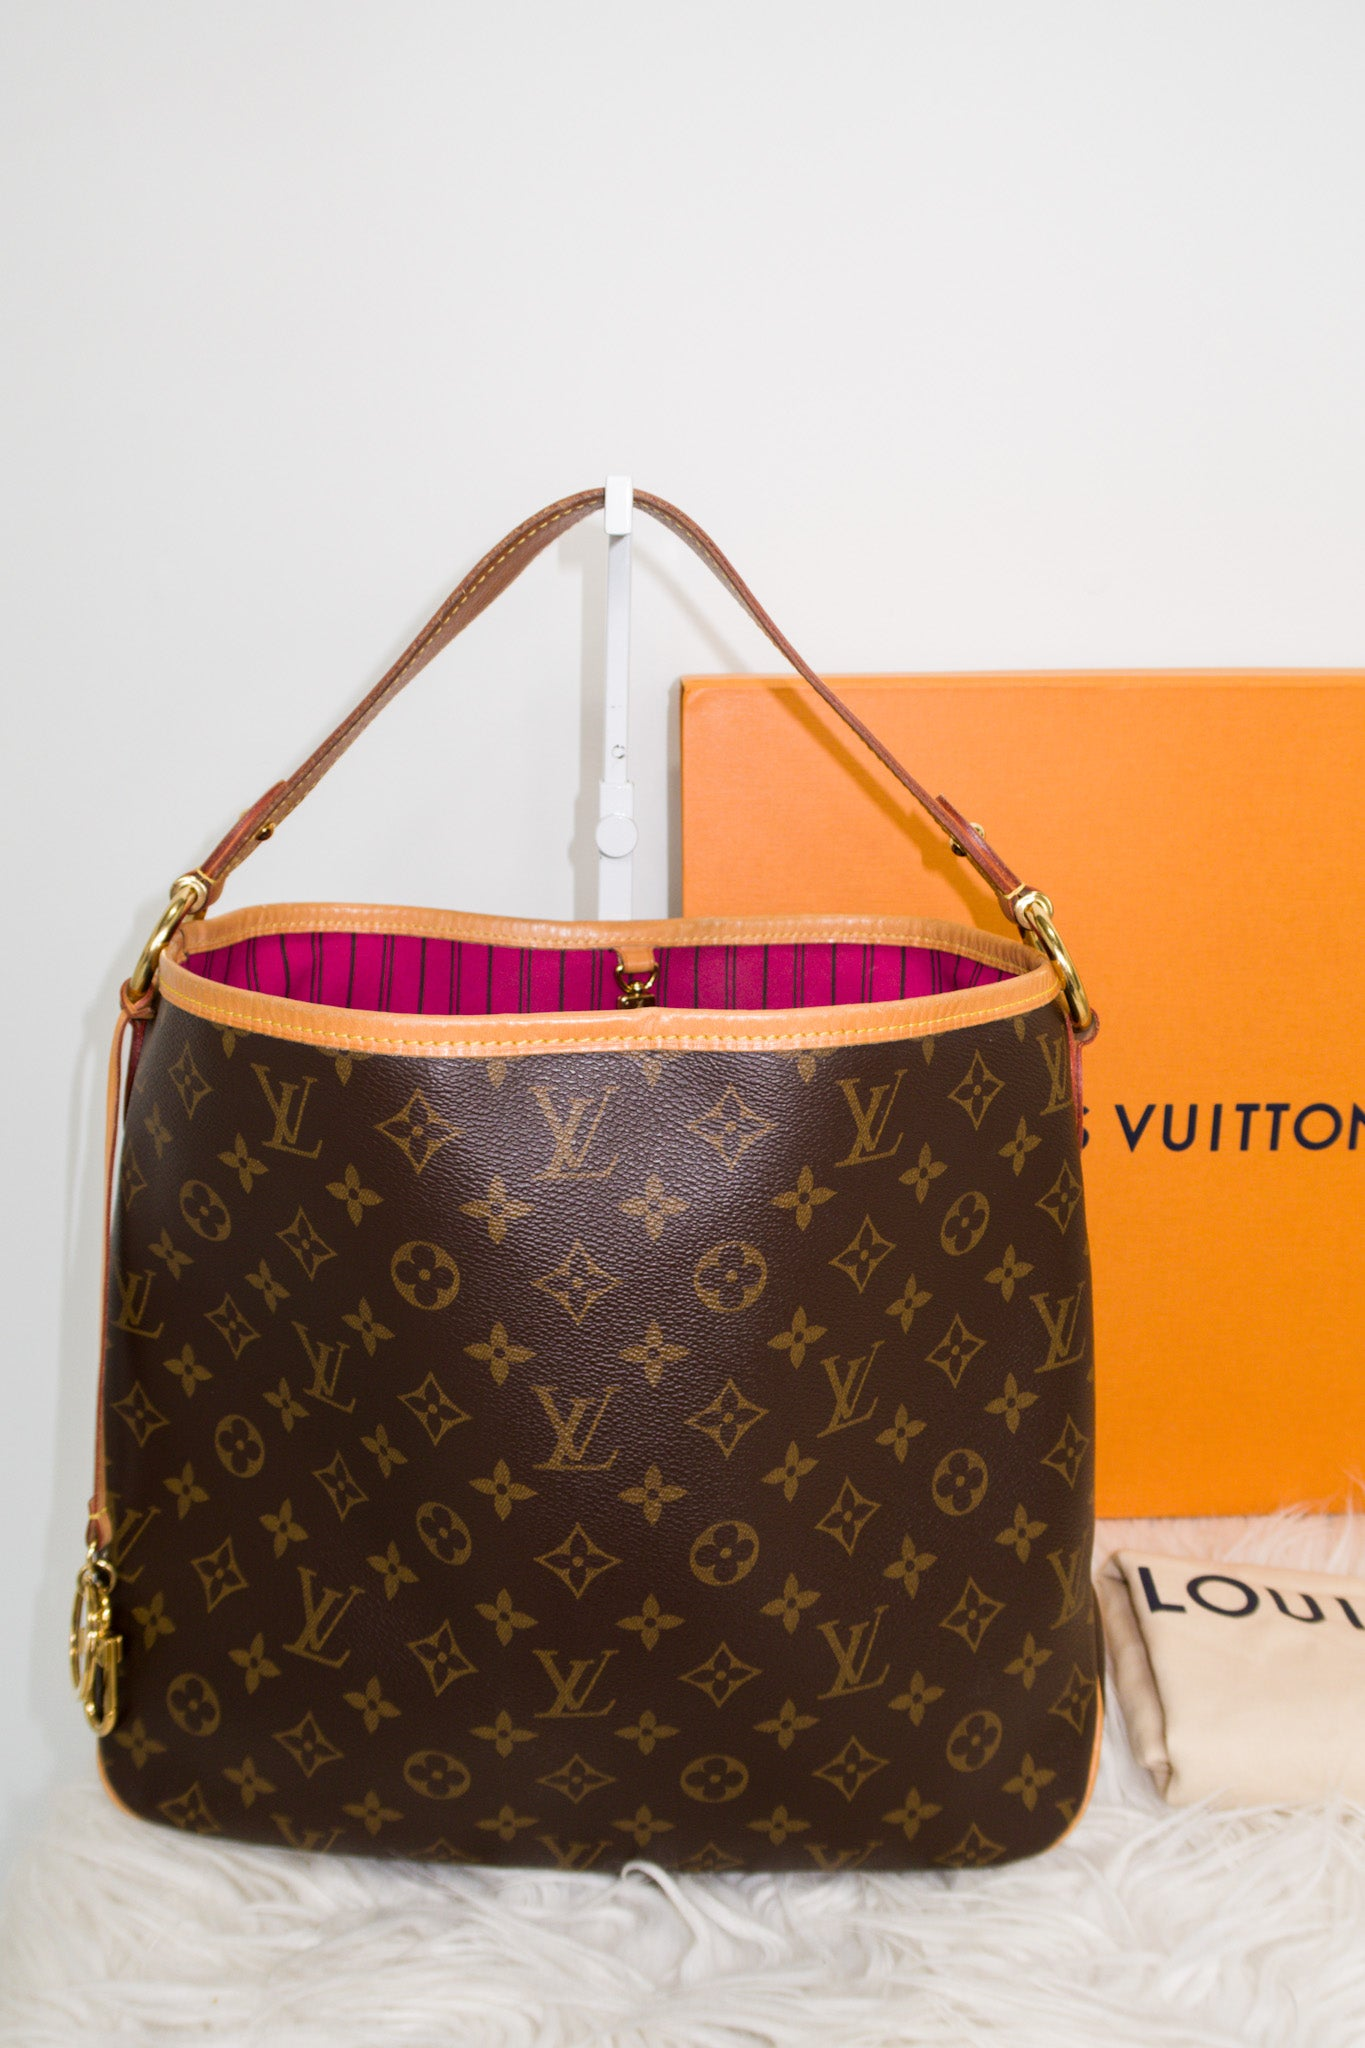 Louis Vuitton Monogram Delightful PM w/ pink interior